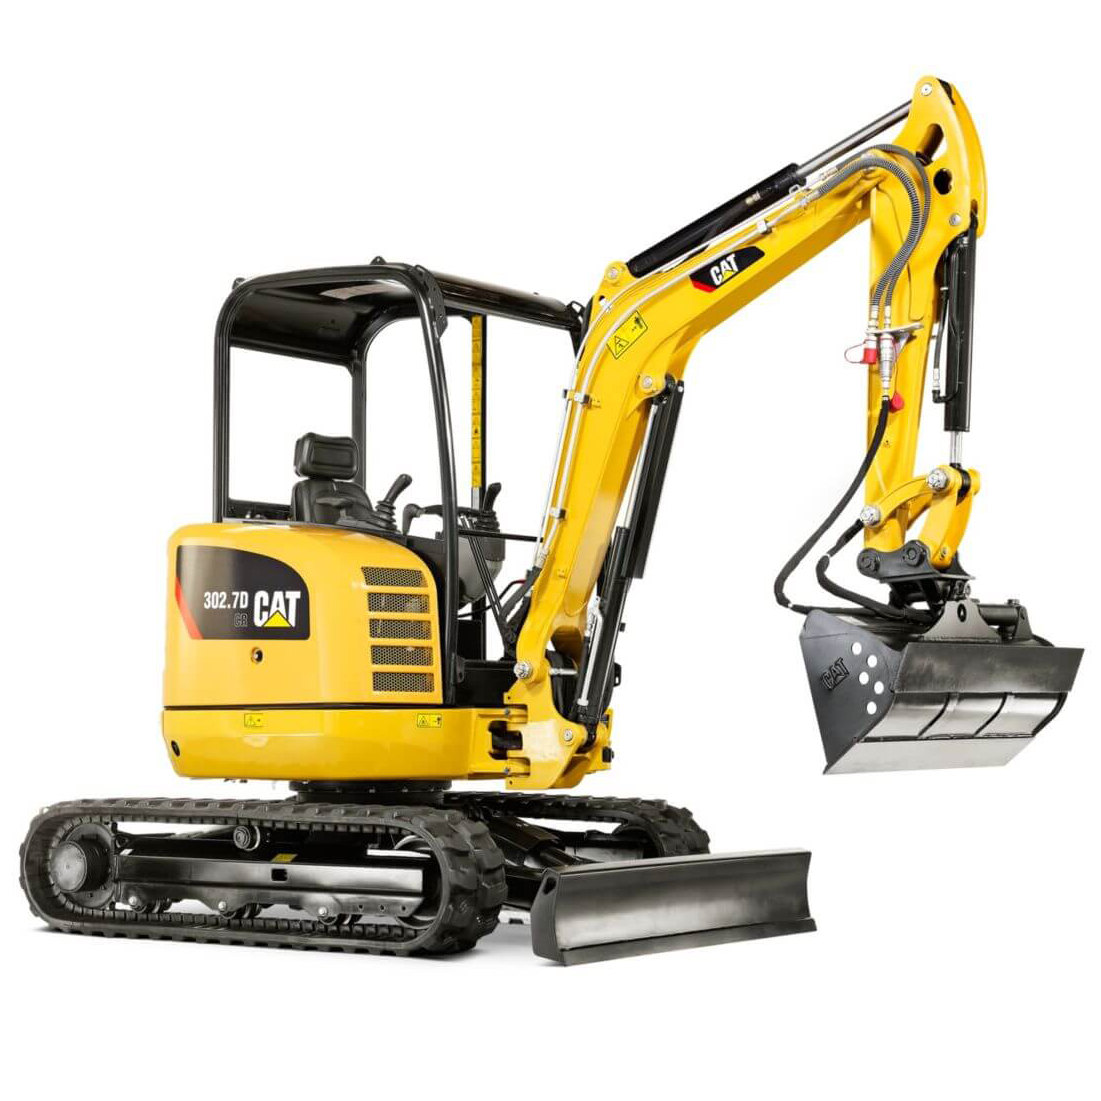 CAT 302.7D Mini Hydraulic Excavator